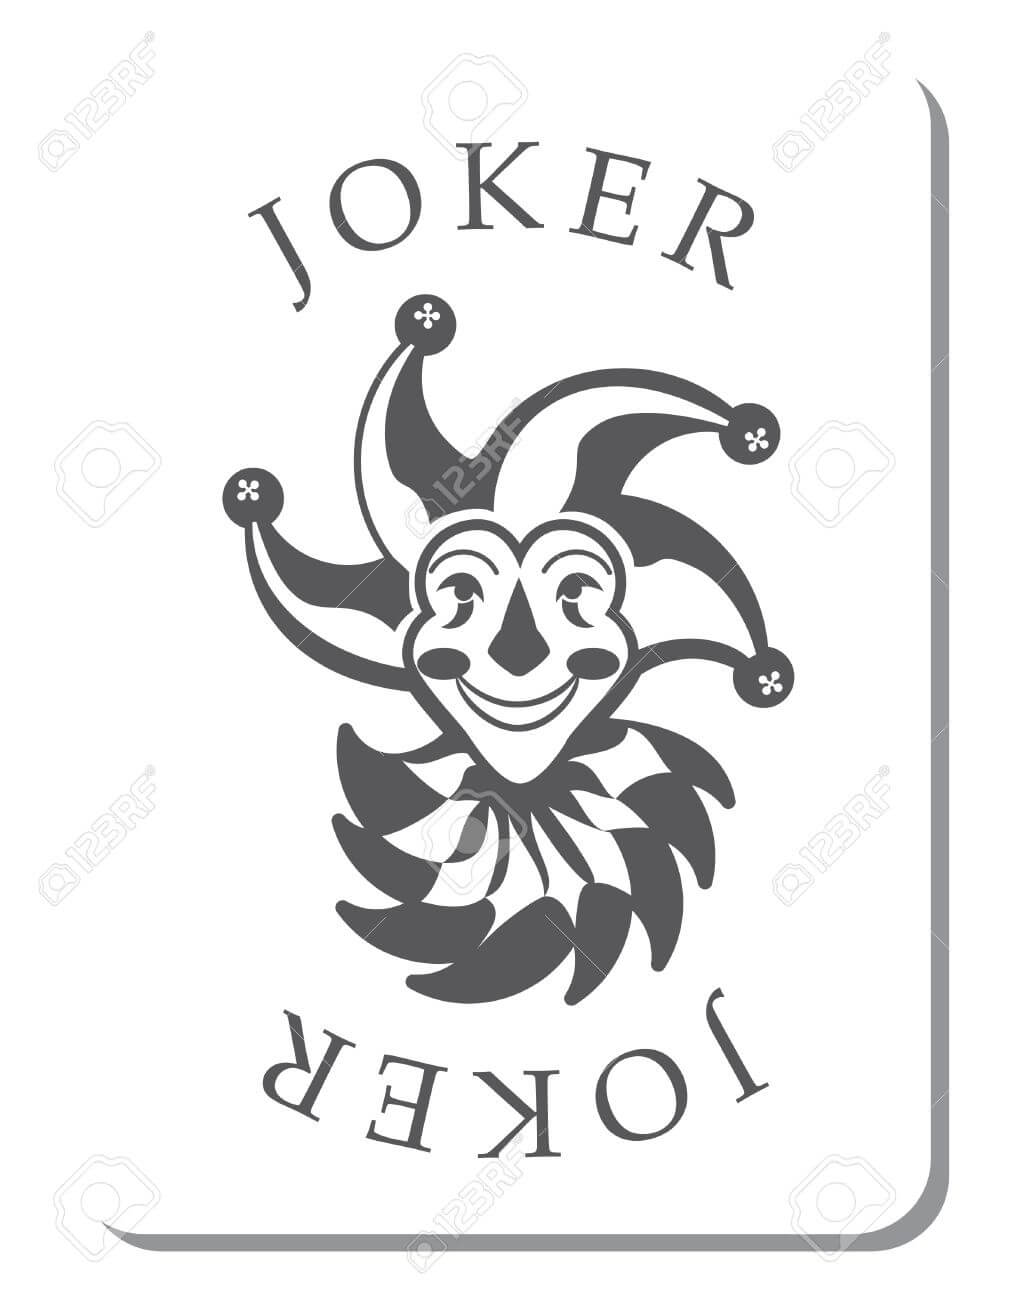 Playing Cards With The Joker From A Deck Of Playing Cards In Joker Card Template